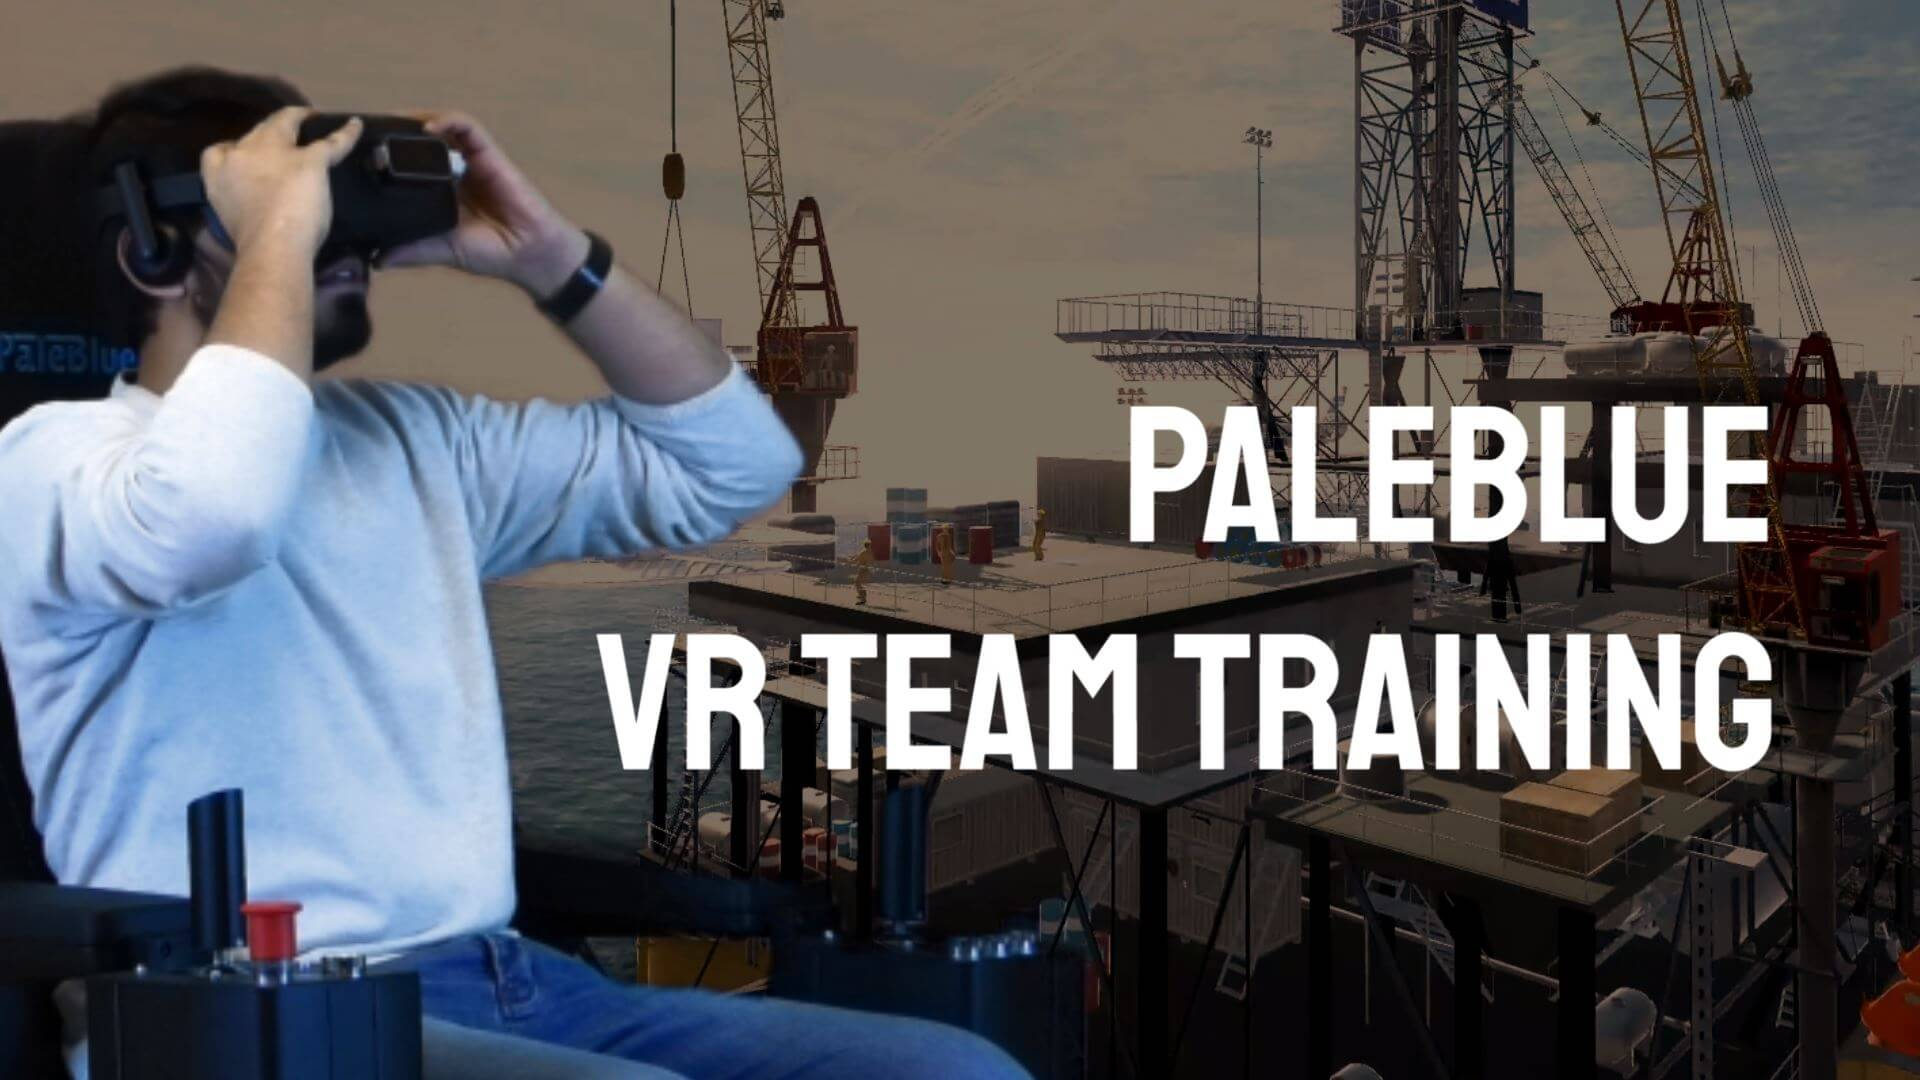 PaleBlue Launches VR Full Team Training